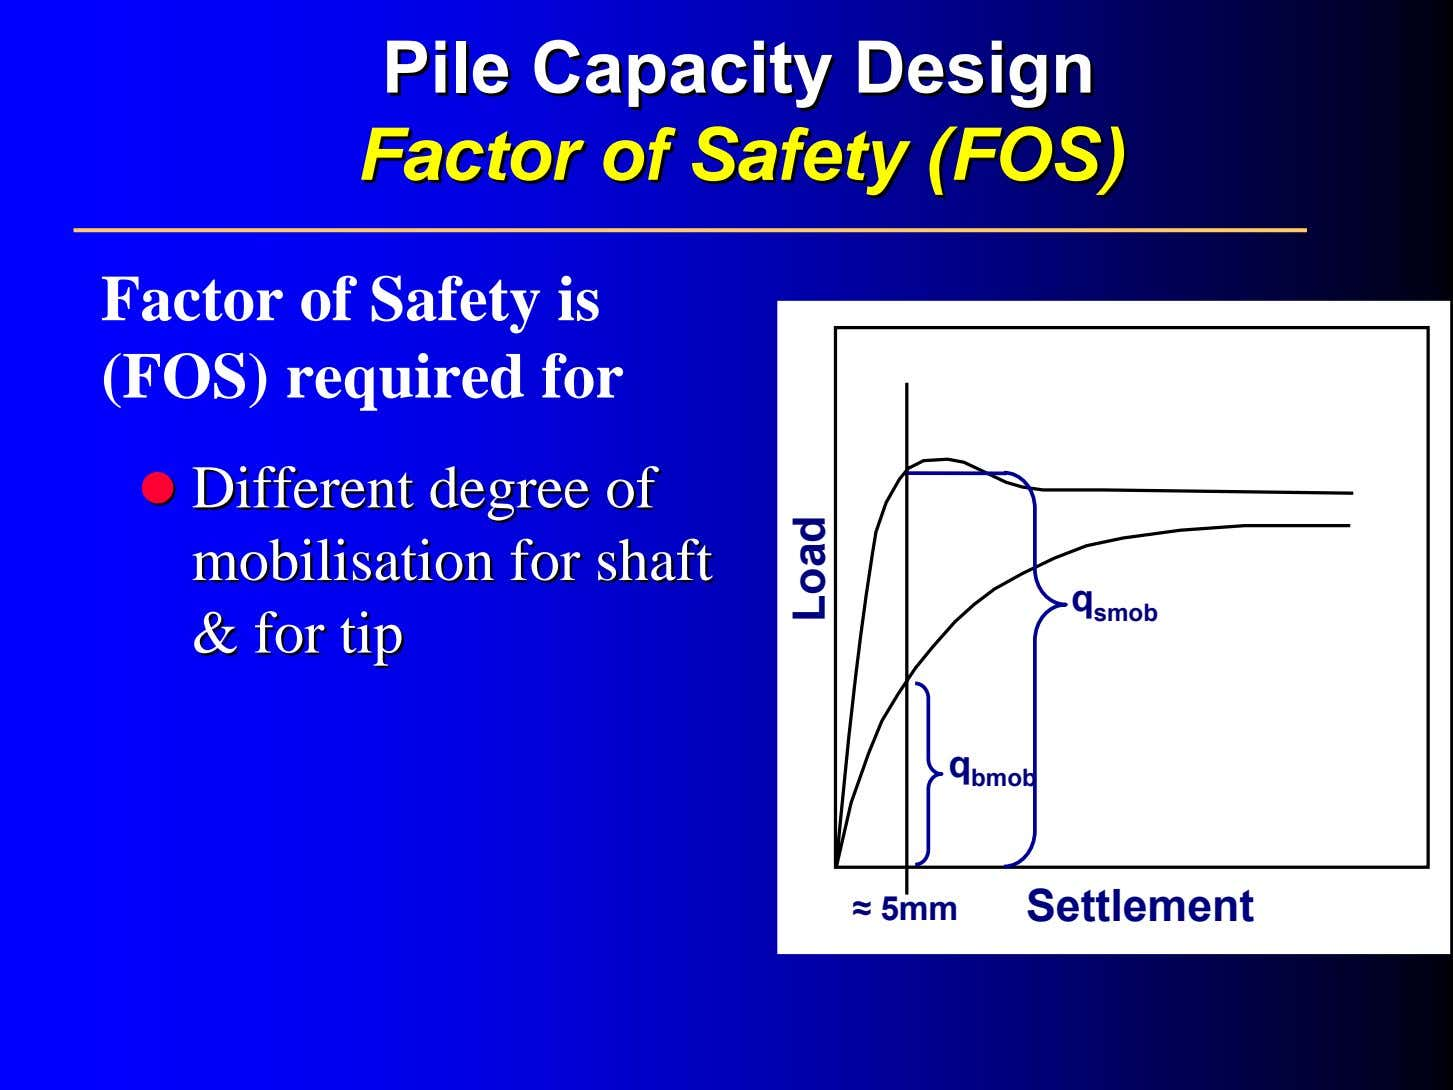 PilePile CapacityCapacity DesignDesign FactorFactor ofof SafetySafety (FOS)(FOS) Factor of Safety is (FOS) required for